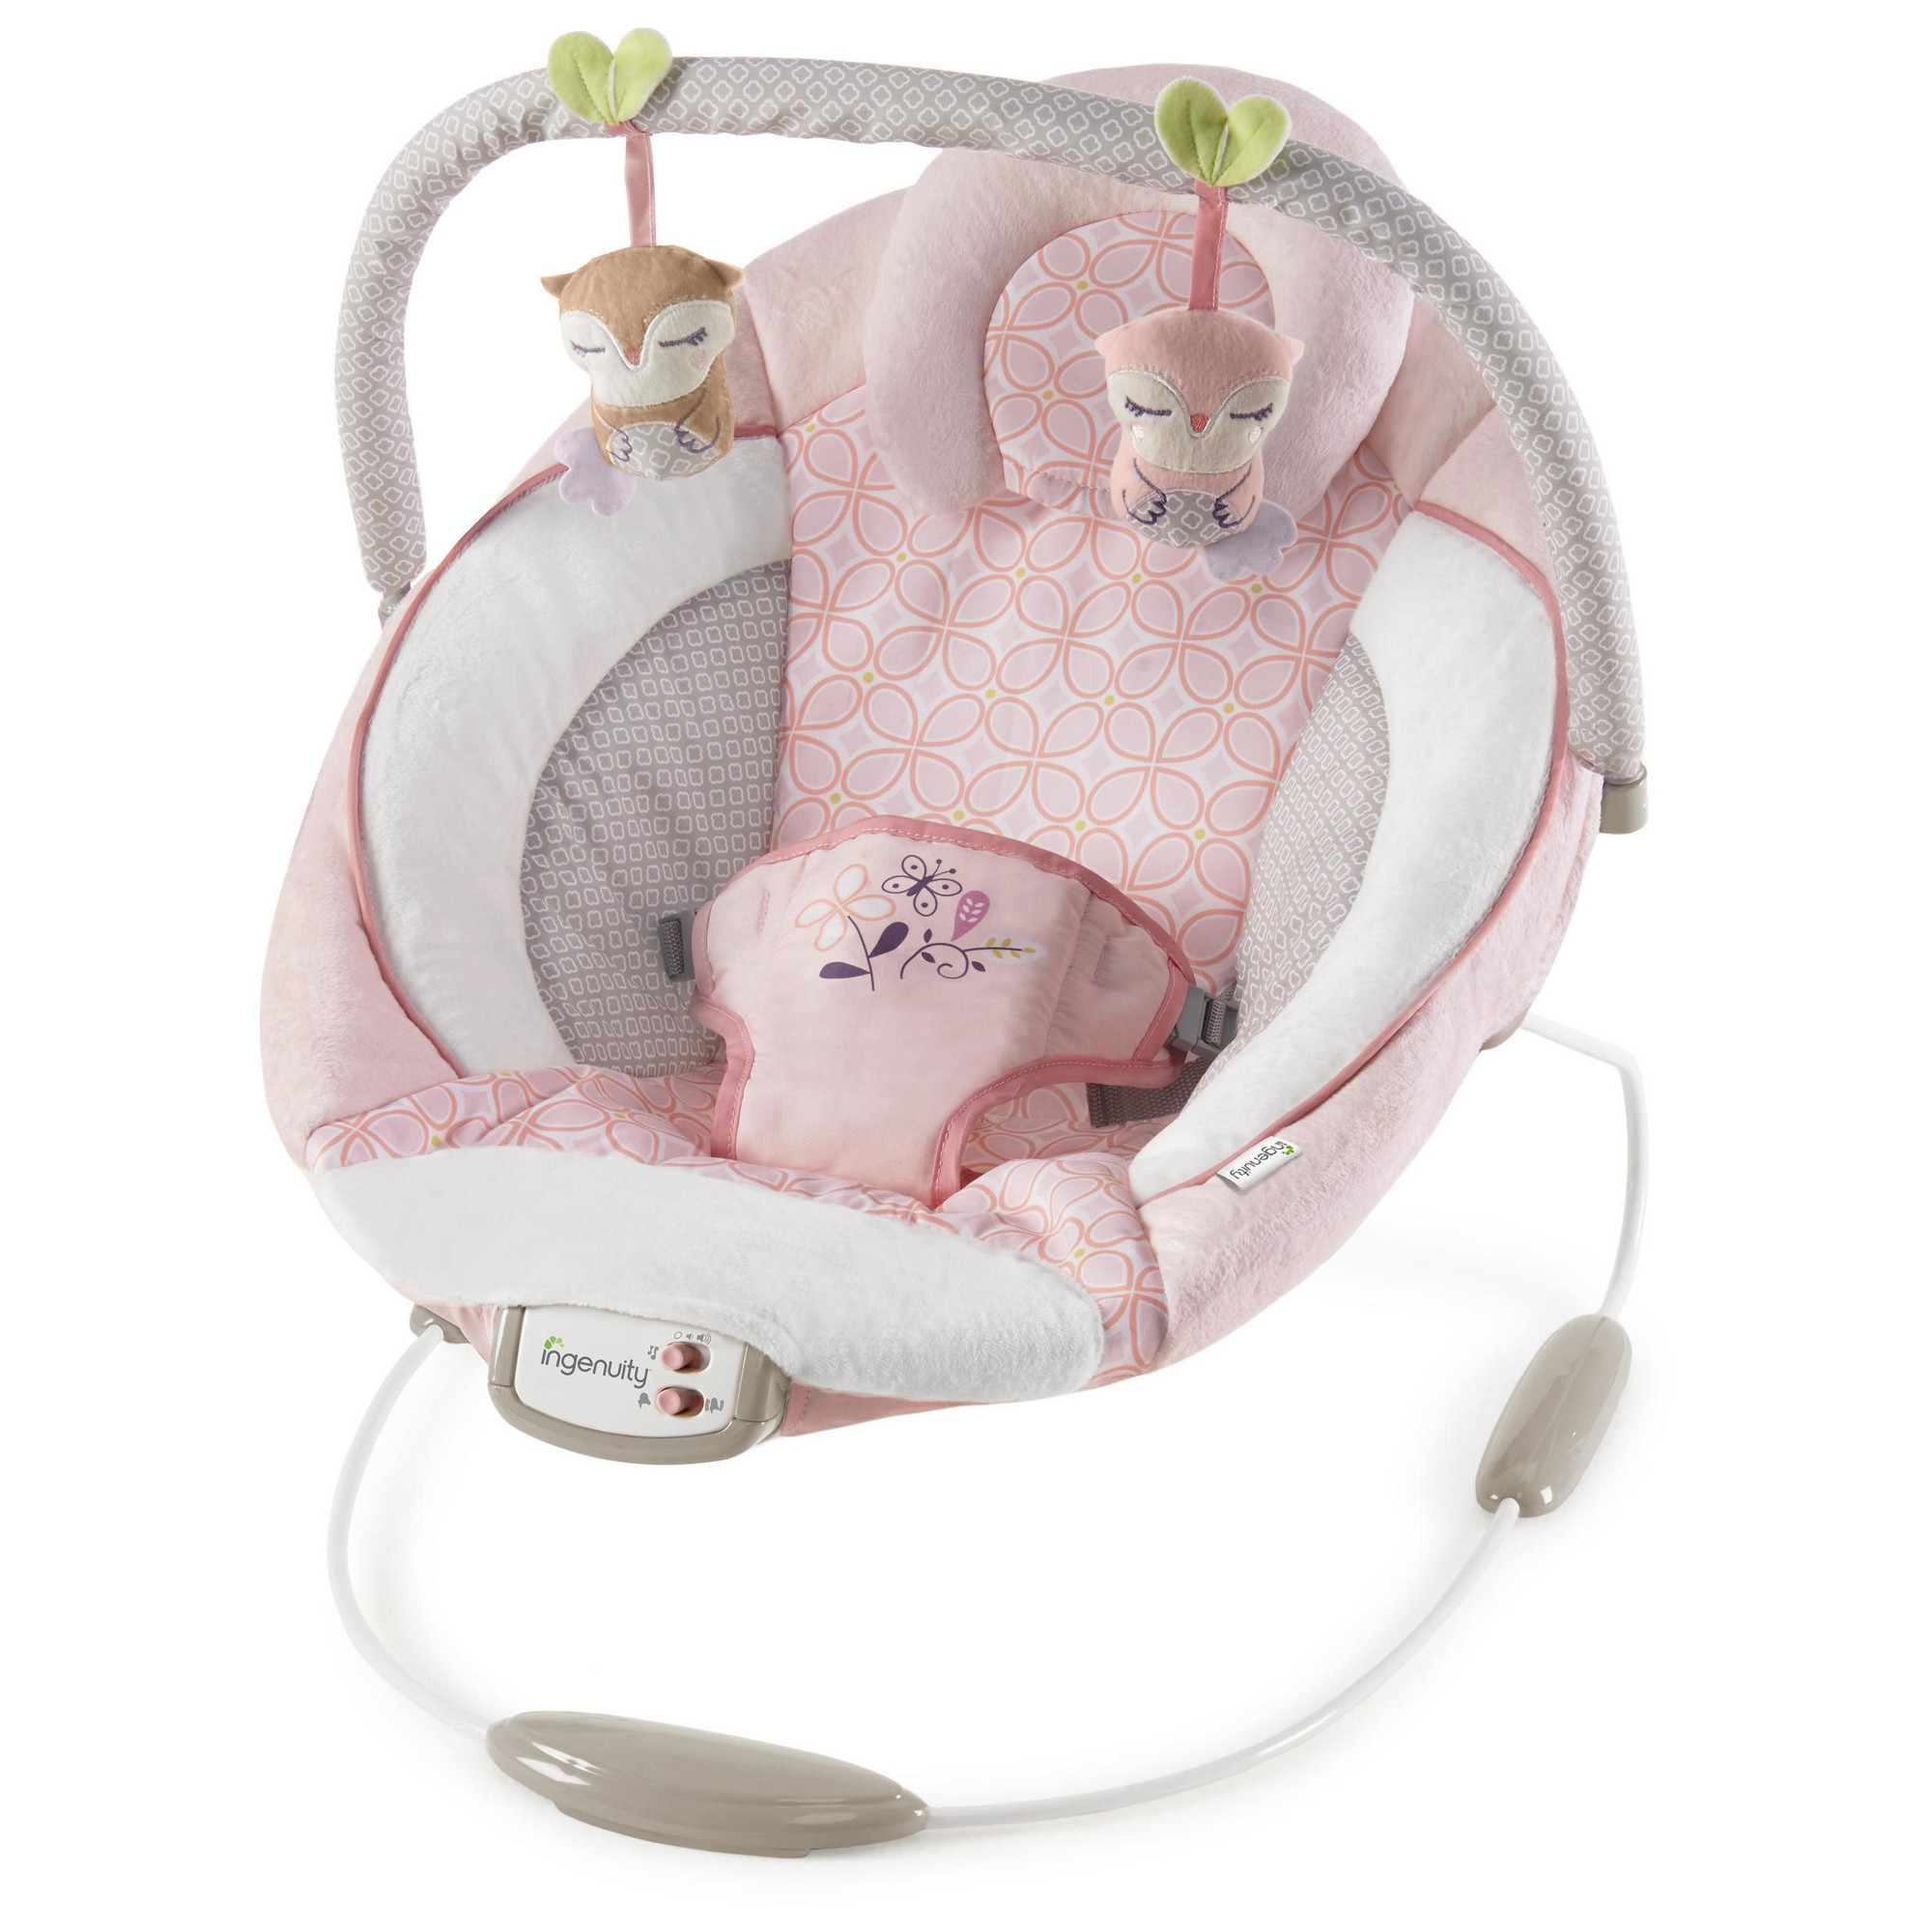 Ingenuity Cradling Bouncer Audrey Baby Bouncer Baby Items For Sale Soothing Baby